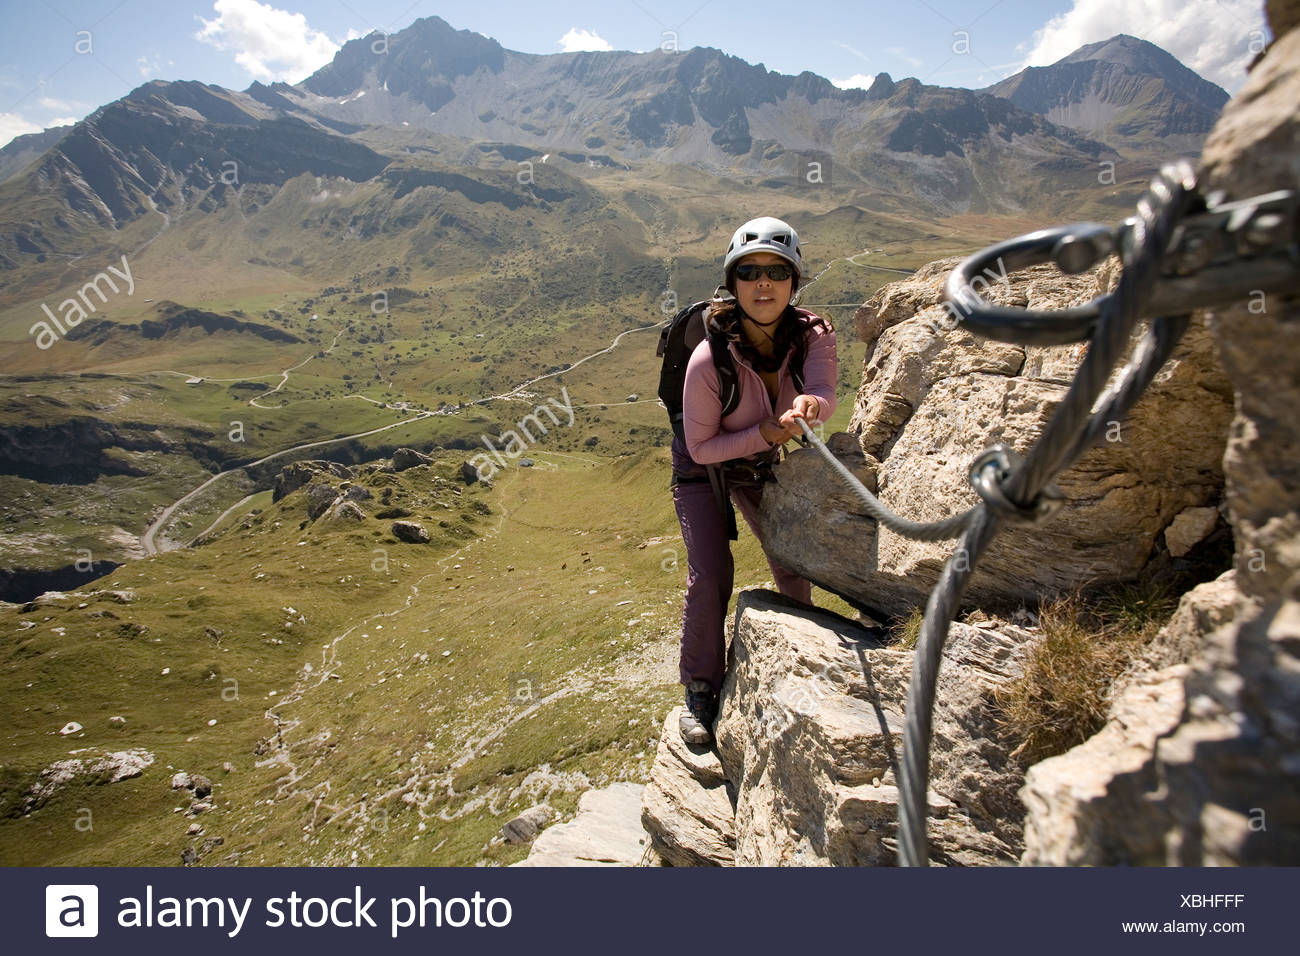 A young woman uses the cable bolted to the rock for climbing support while engaging in the sport of Via Ferrata in the French A - Stock Image